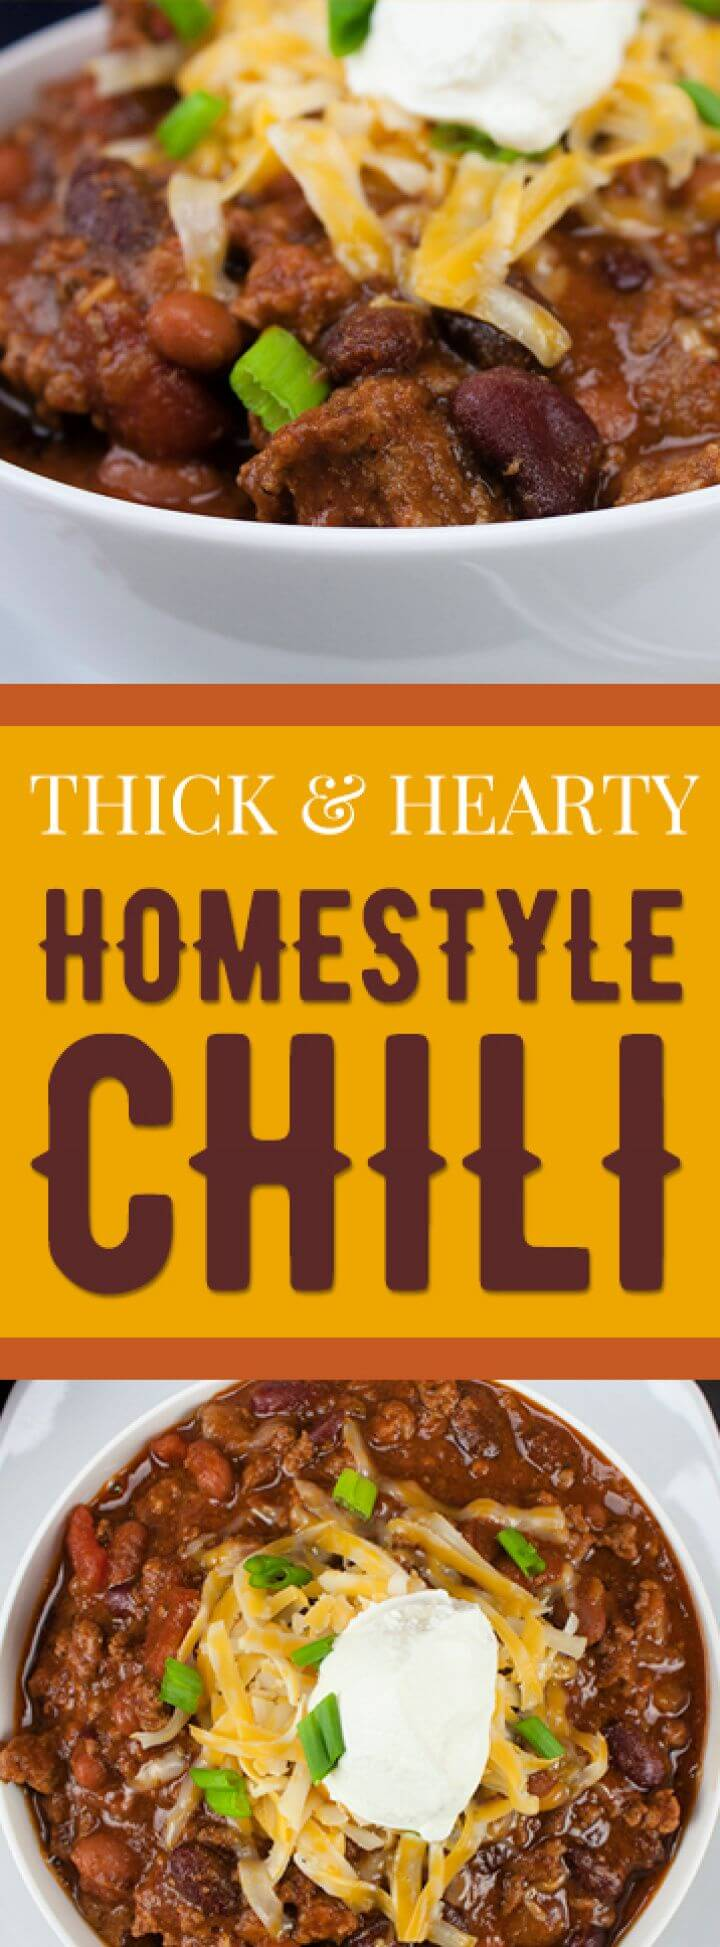 How To DIY Thick and Hearty Homestyle Chili